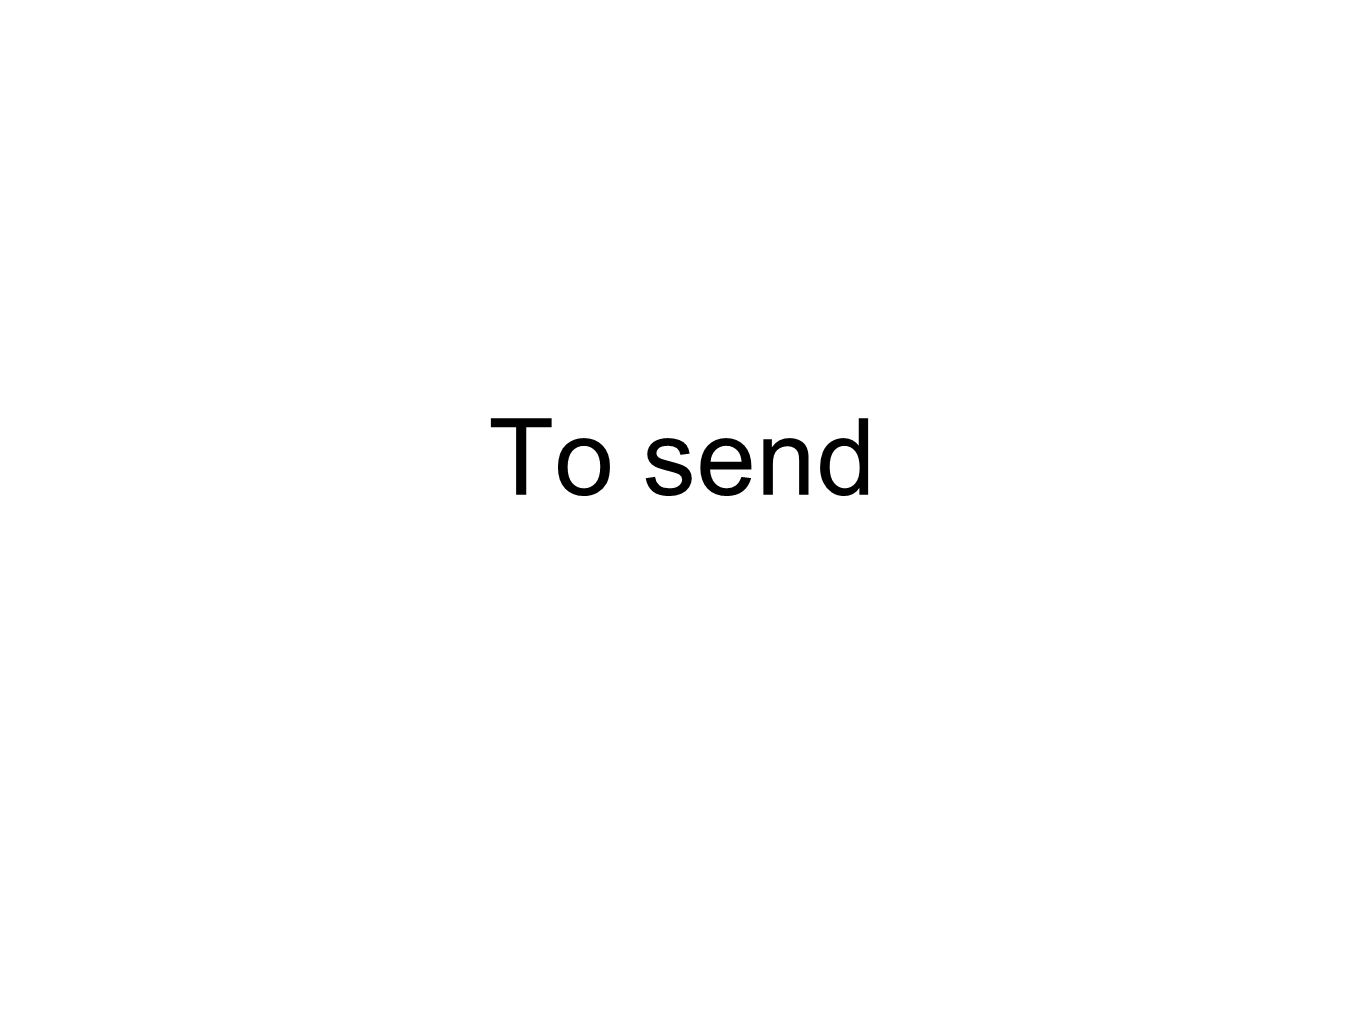 To send